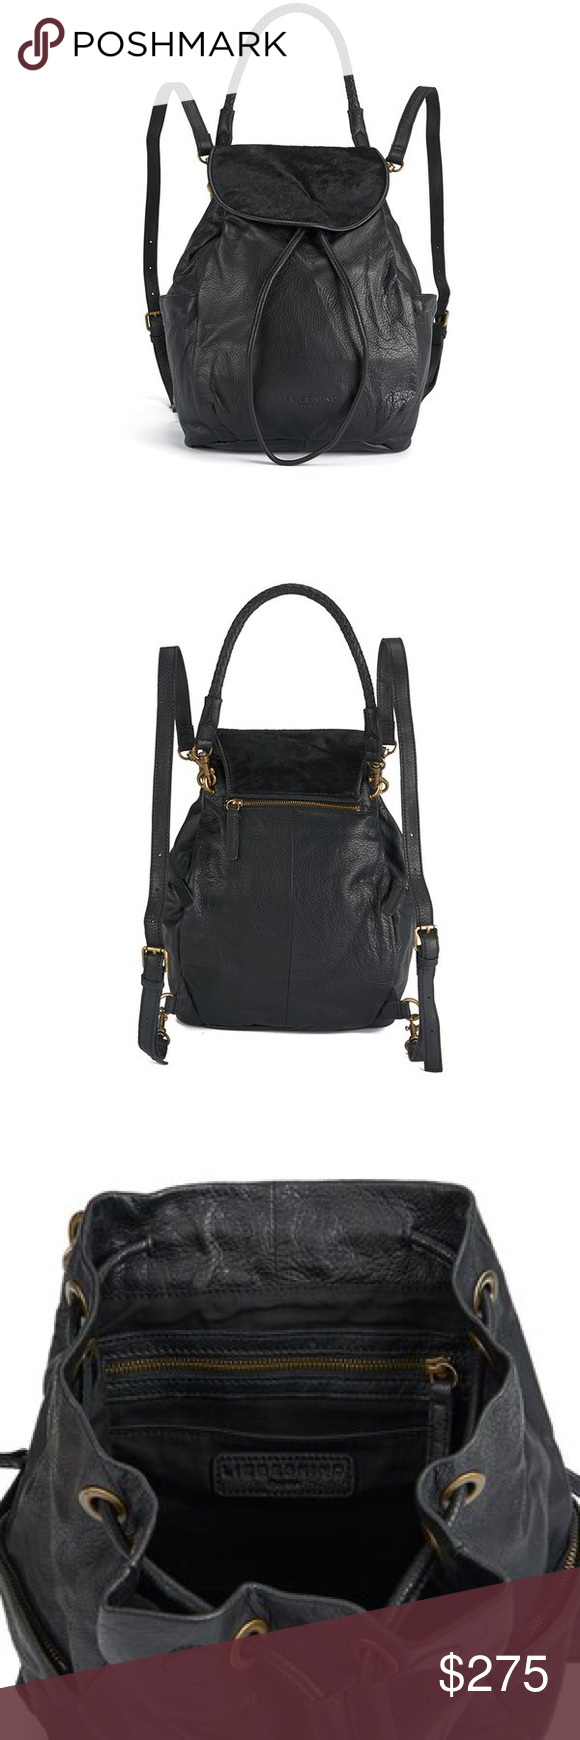 Liebskind IDA- pony black leather backpack Only used once! In brand new shape! Liebeskind Bags Backpacks